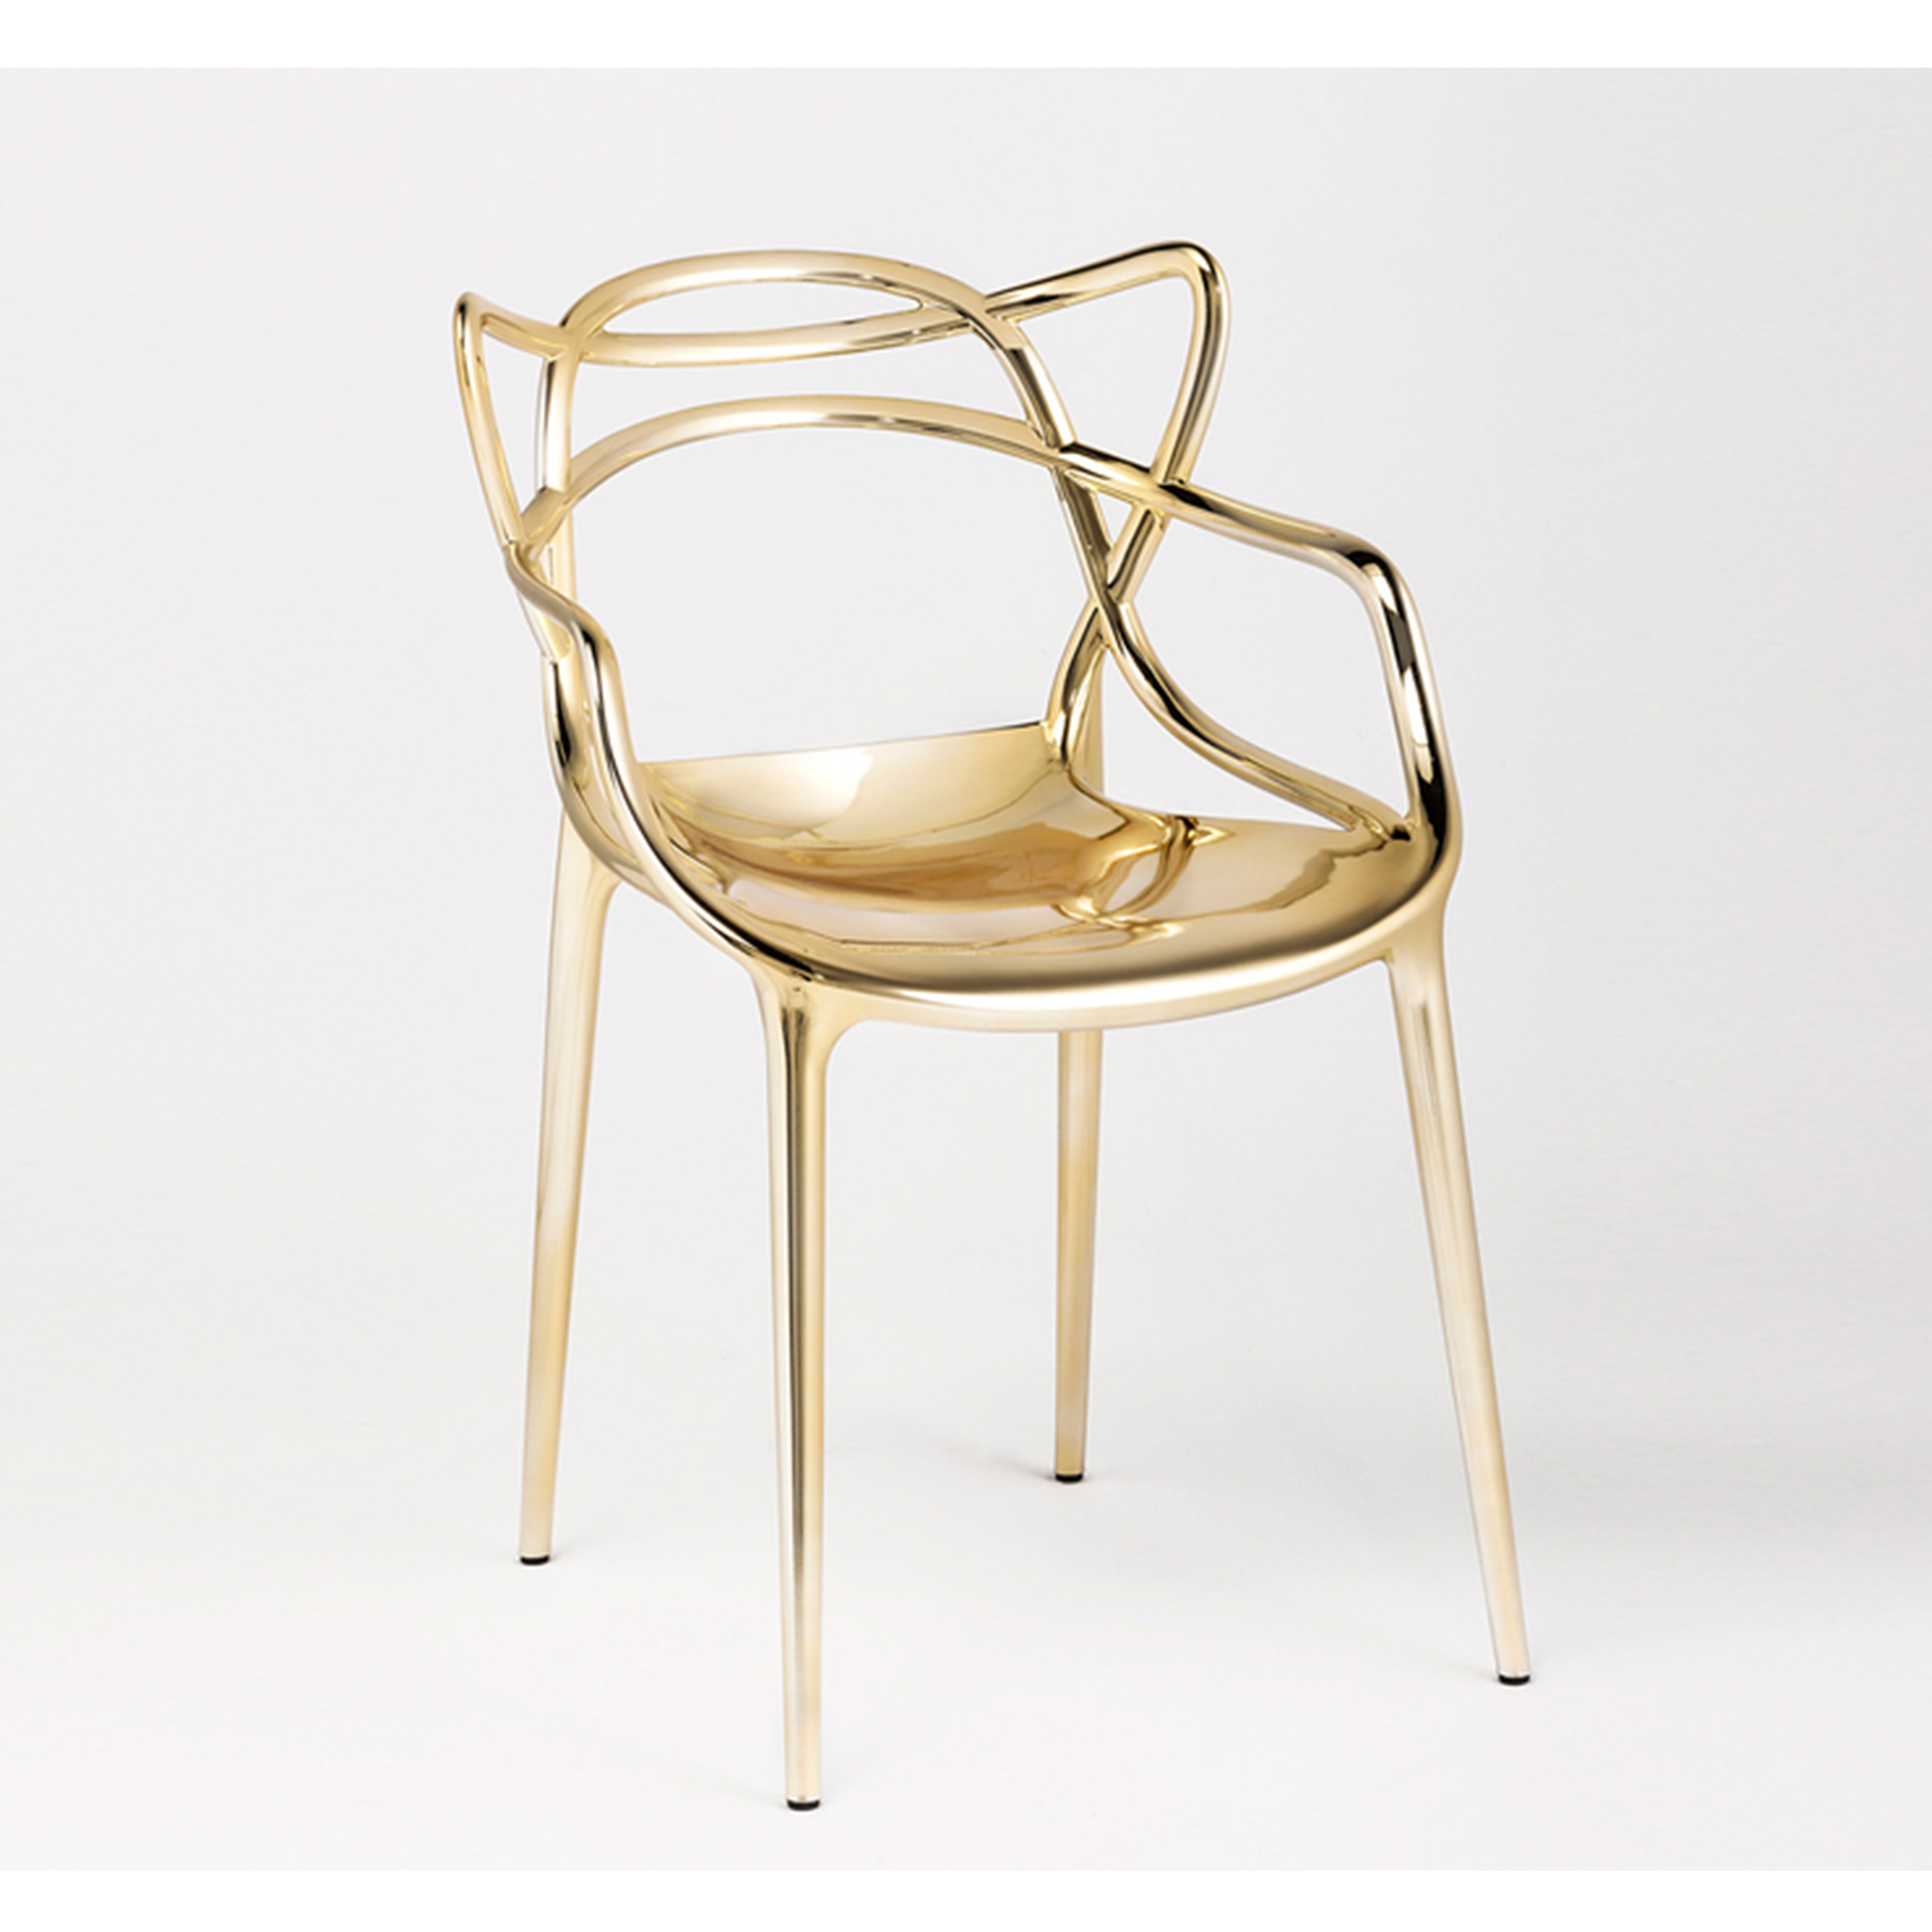 Masters chair. Philippe starck.  sc 1 st  DesignApplause & DesignApplause | Masters chair. Philippe starck.